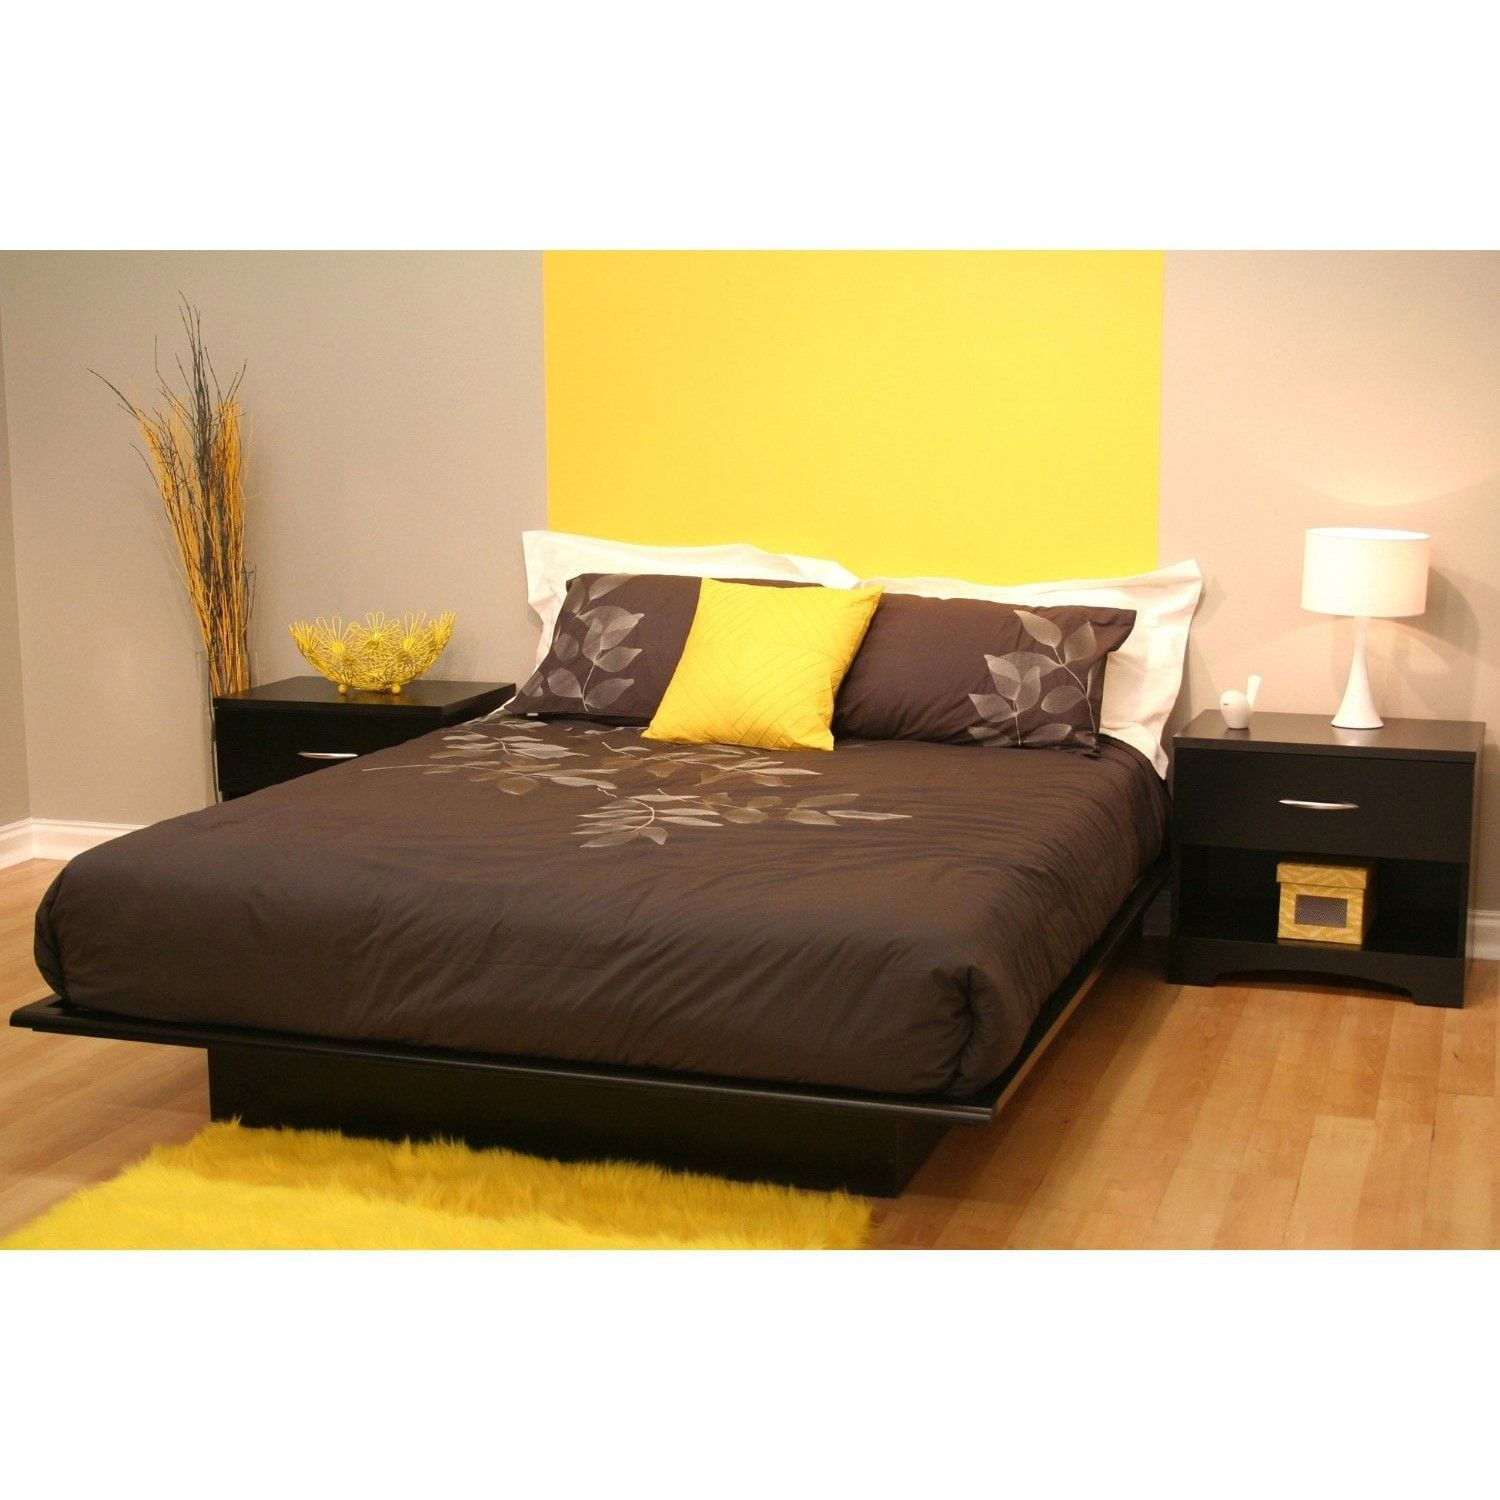 Full size Contemporary Platform Bed in Black Finish